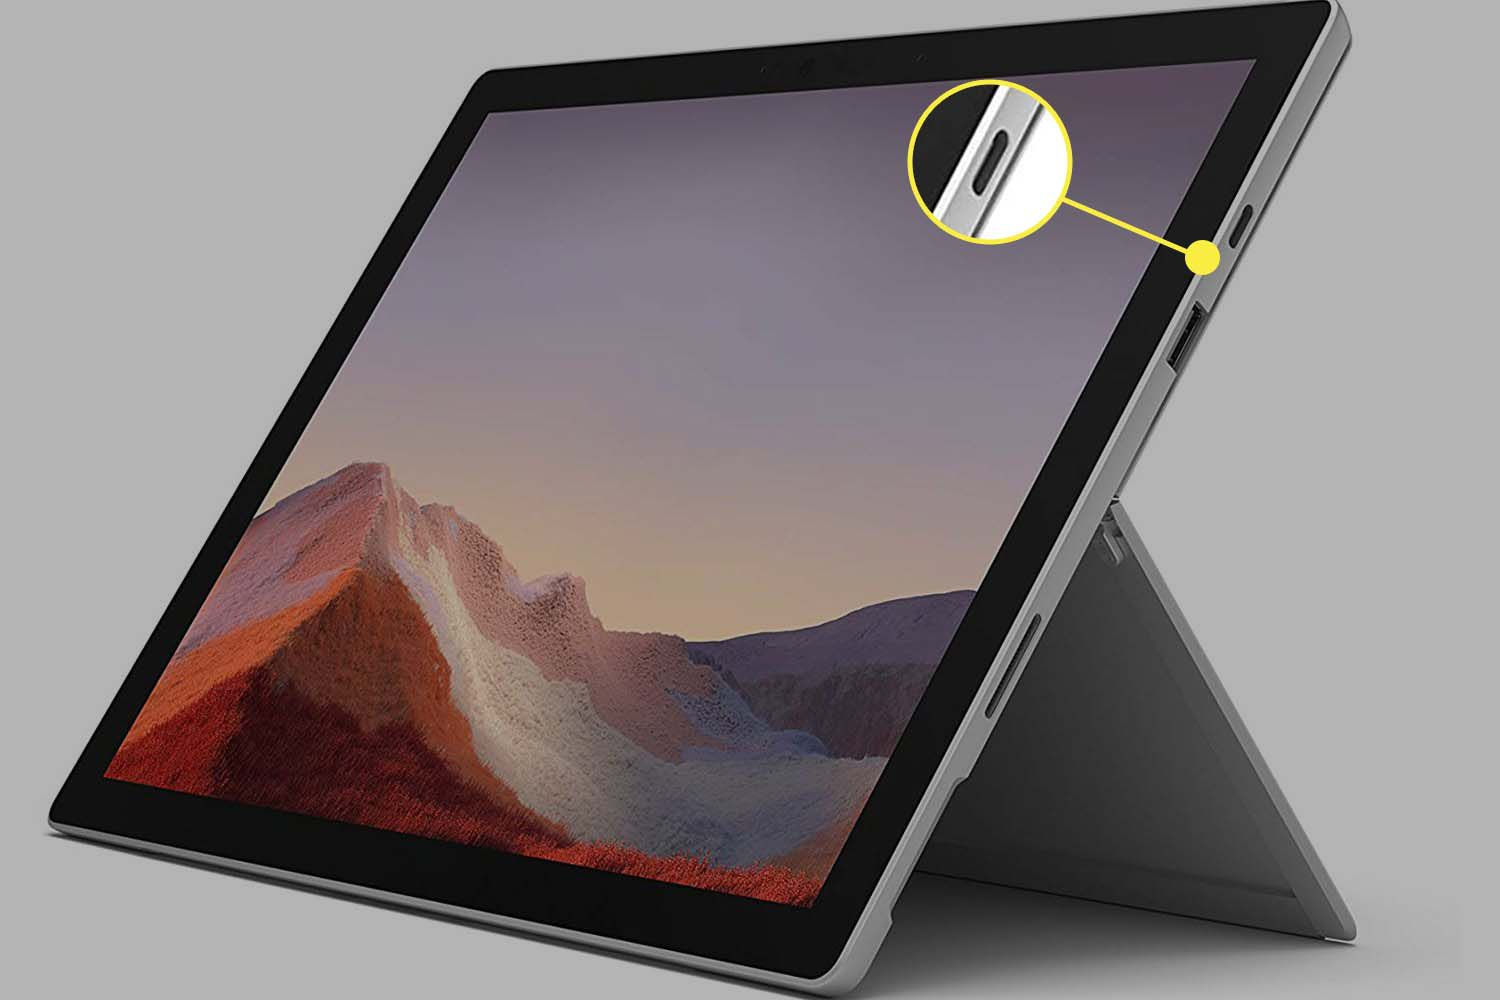 The USB-C port on a Surface Pro 7.